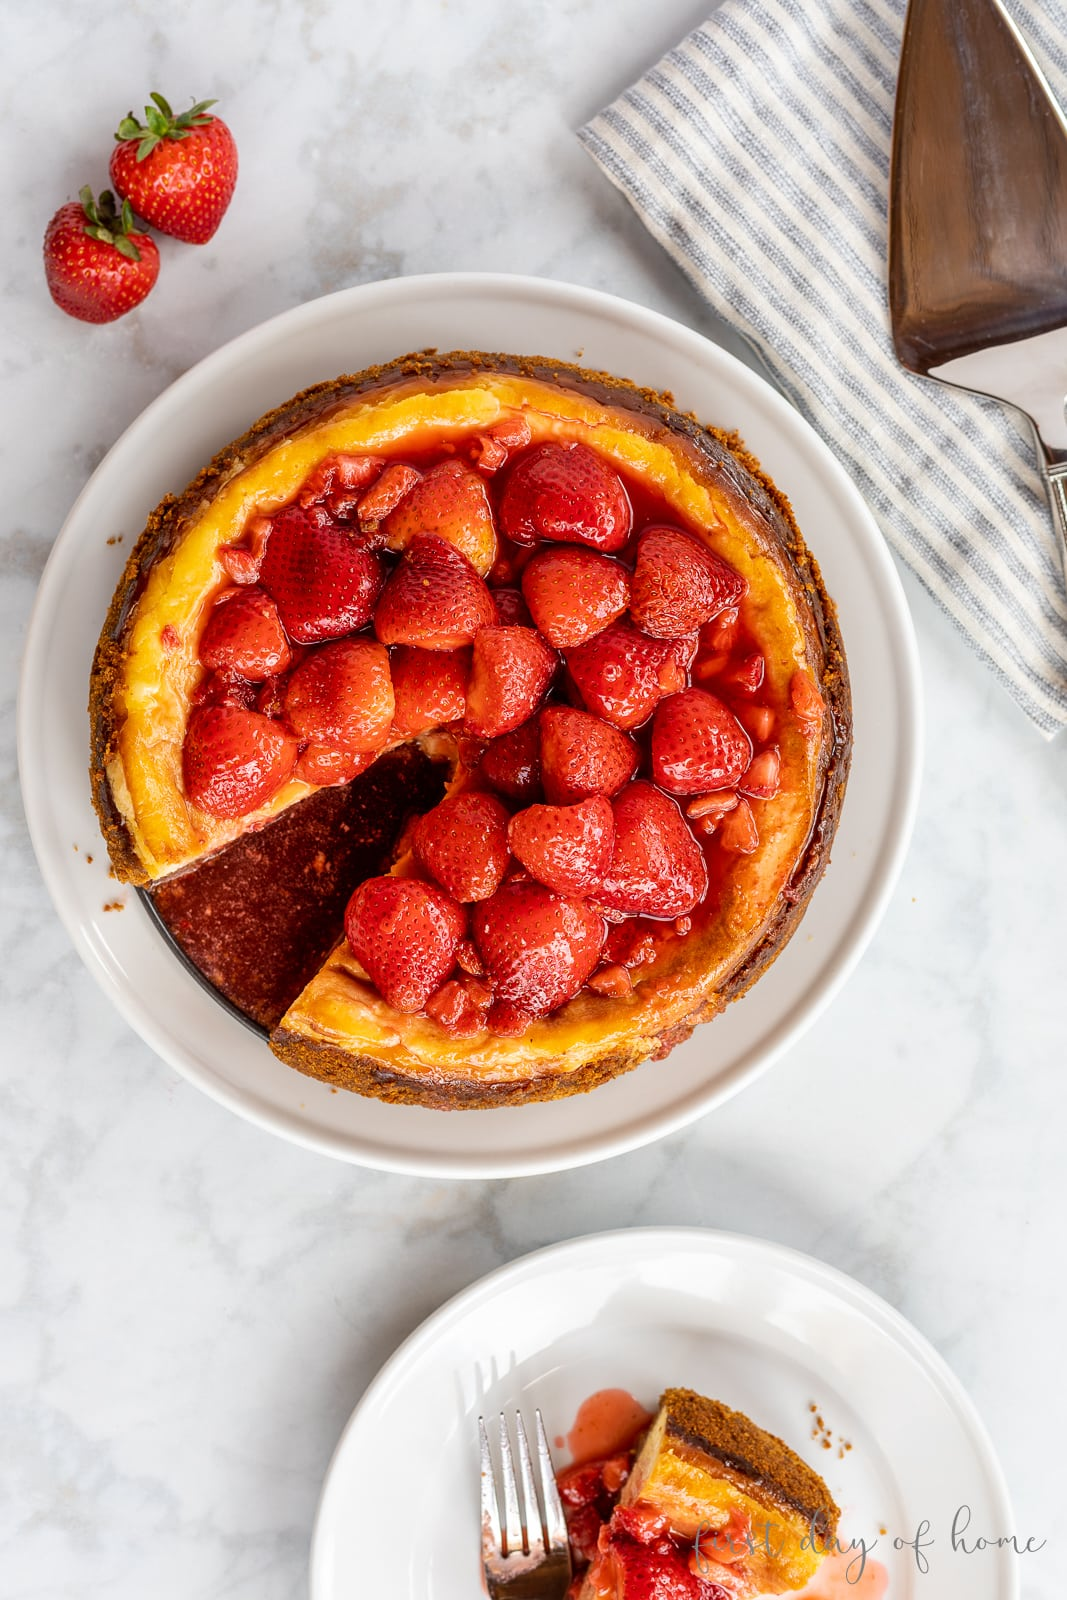 Cheesecake topped with halved strawberries in syrup with a slice cut out